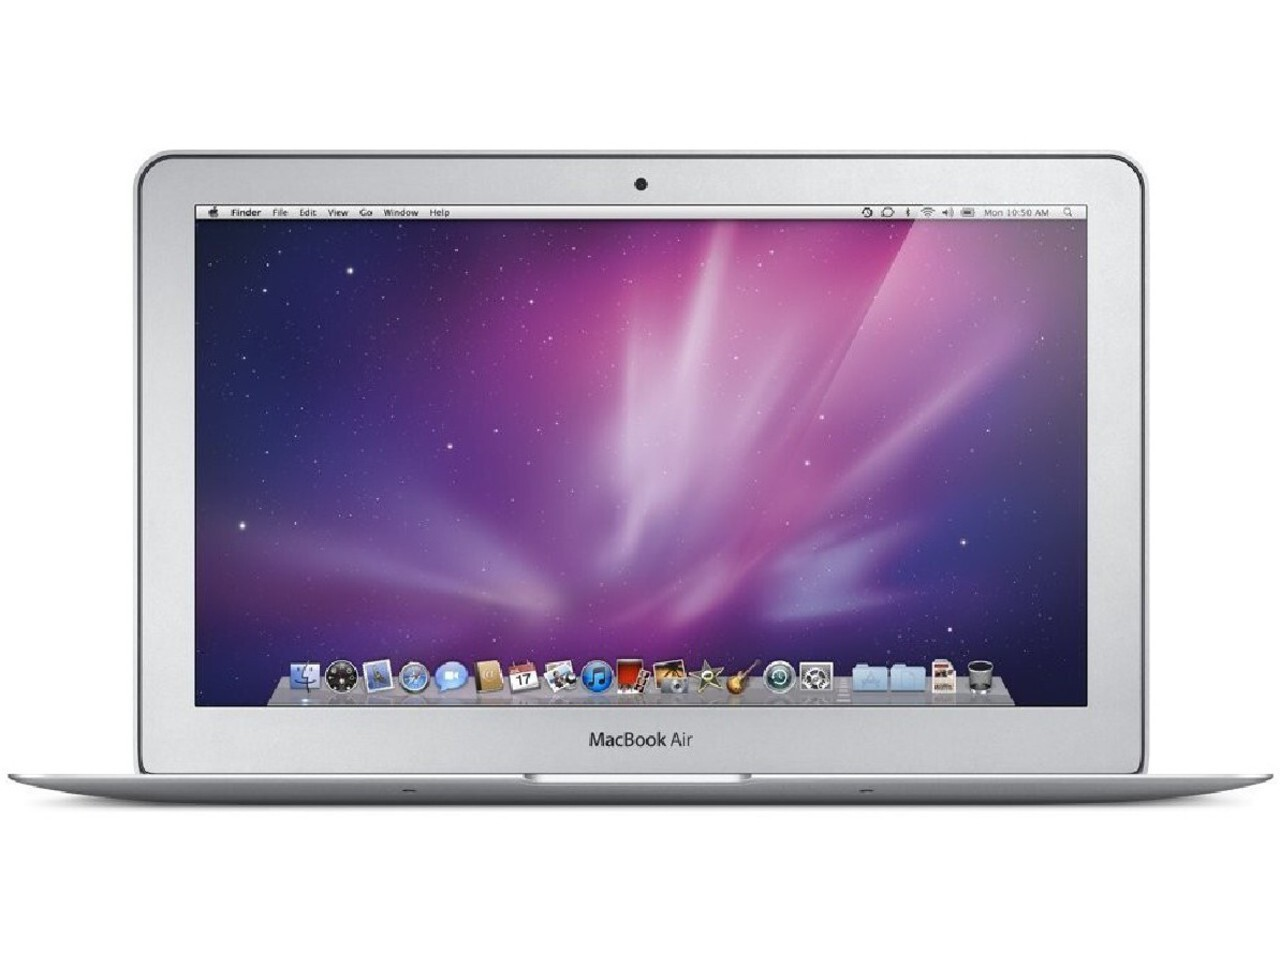 macbook air 11 inch 2015 silver